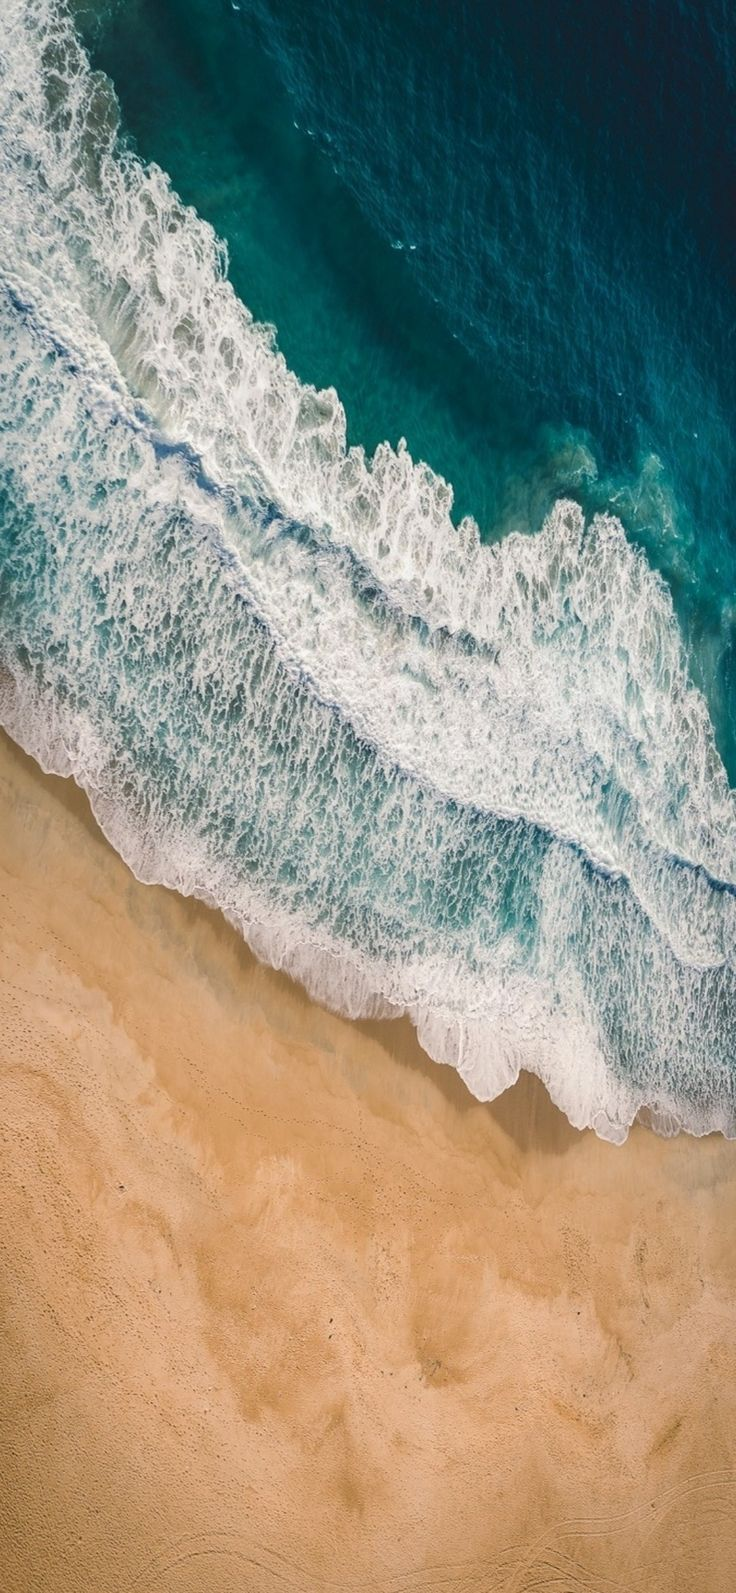 217 Galaxy S8 S9 Wallpapers Images Pinterest Note 8 Wallpaper